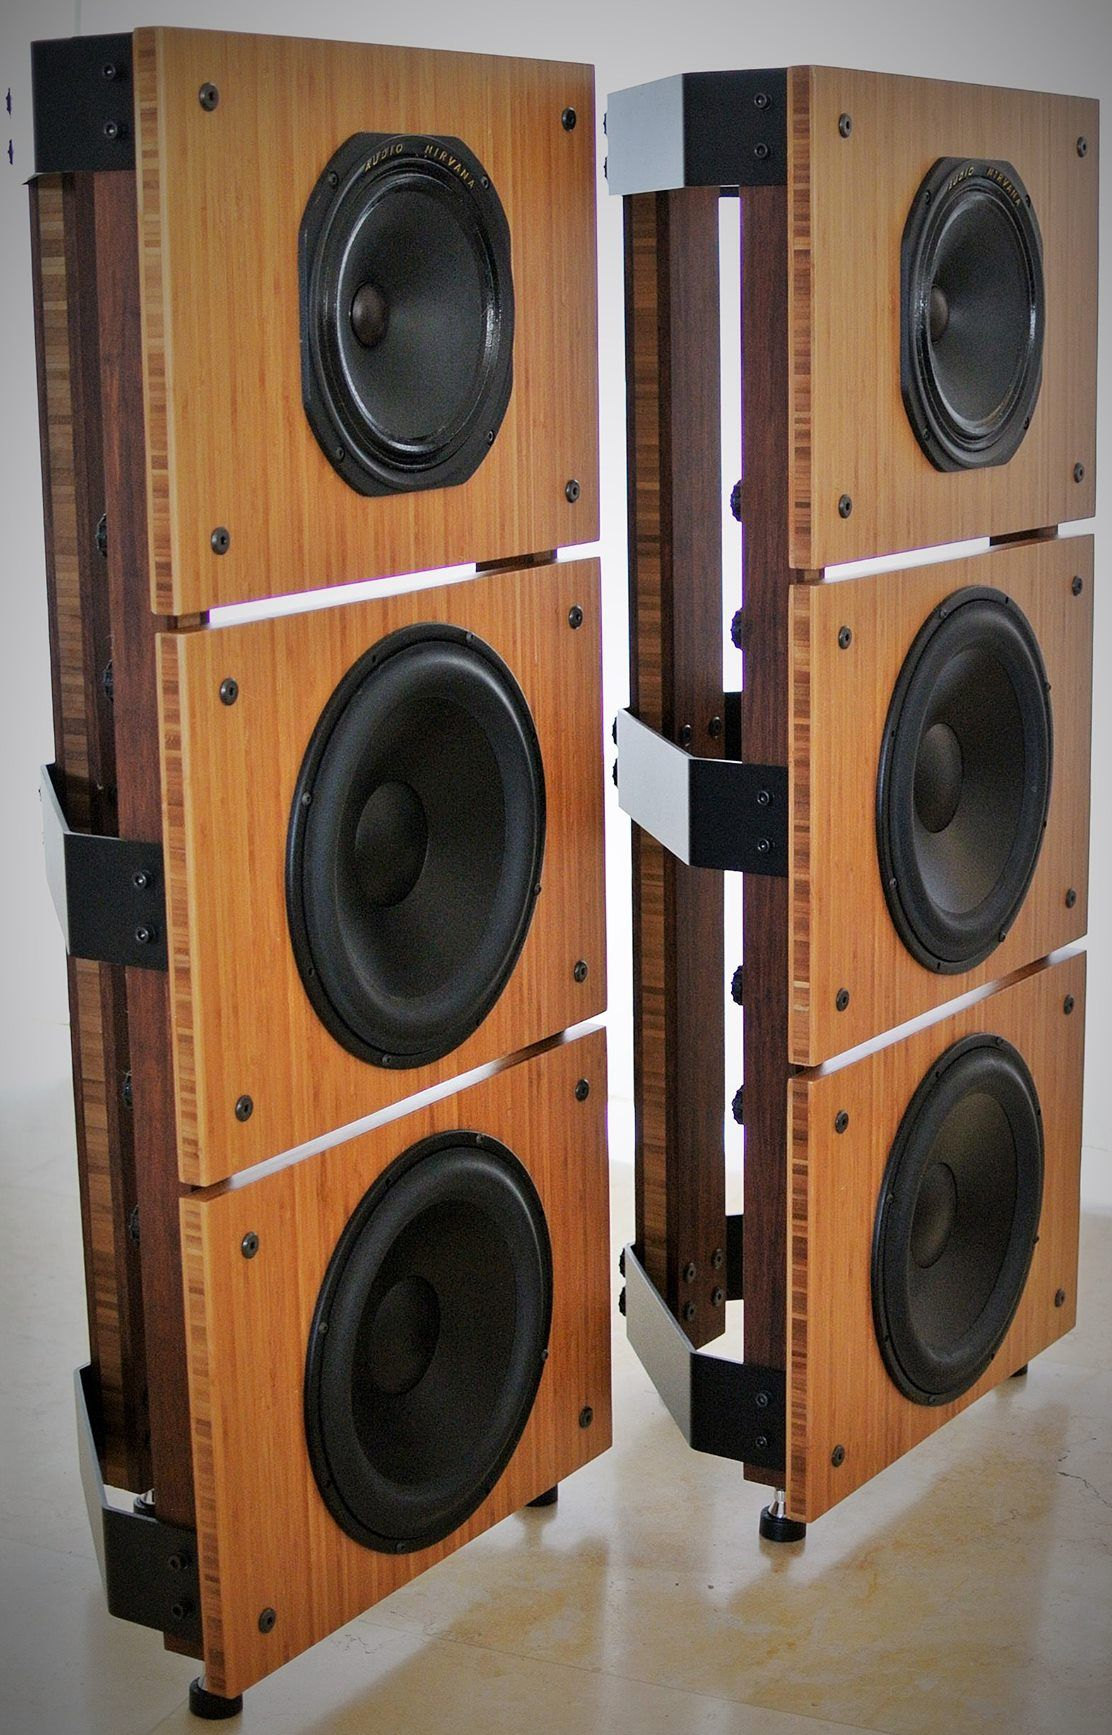 300 customer speaker projects and DIY speaker discussion